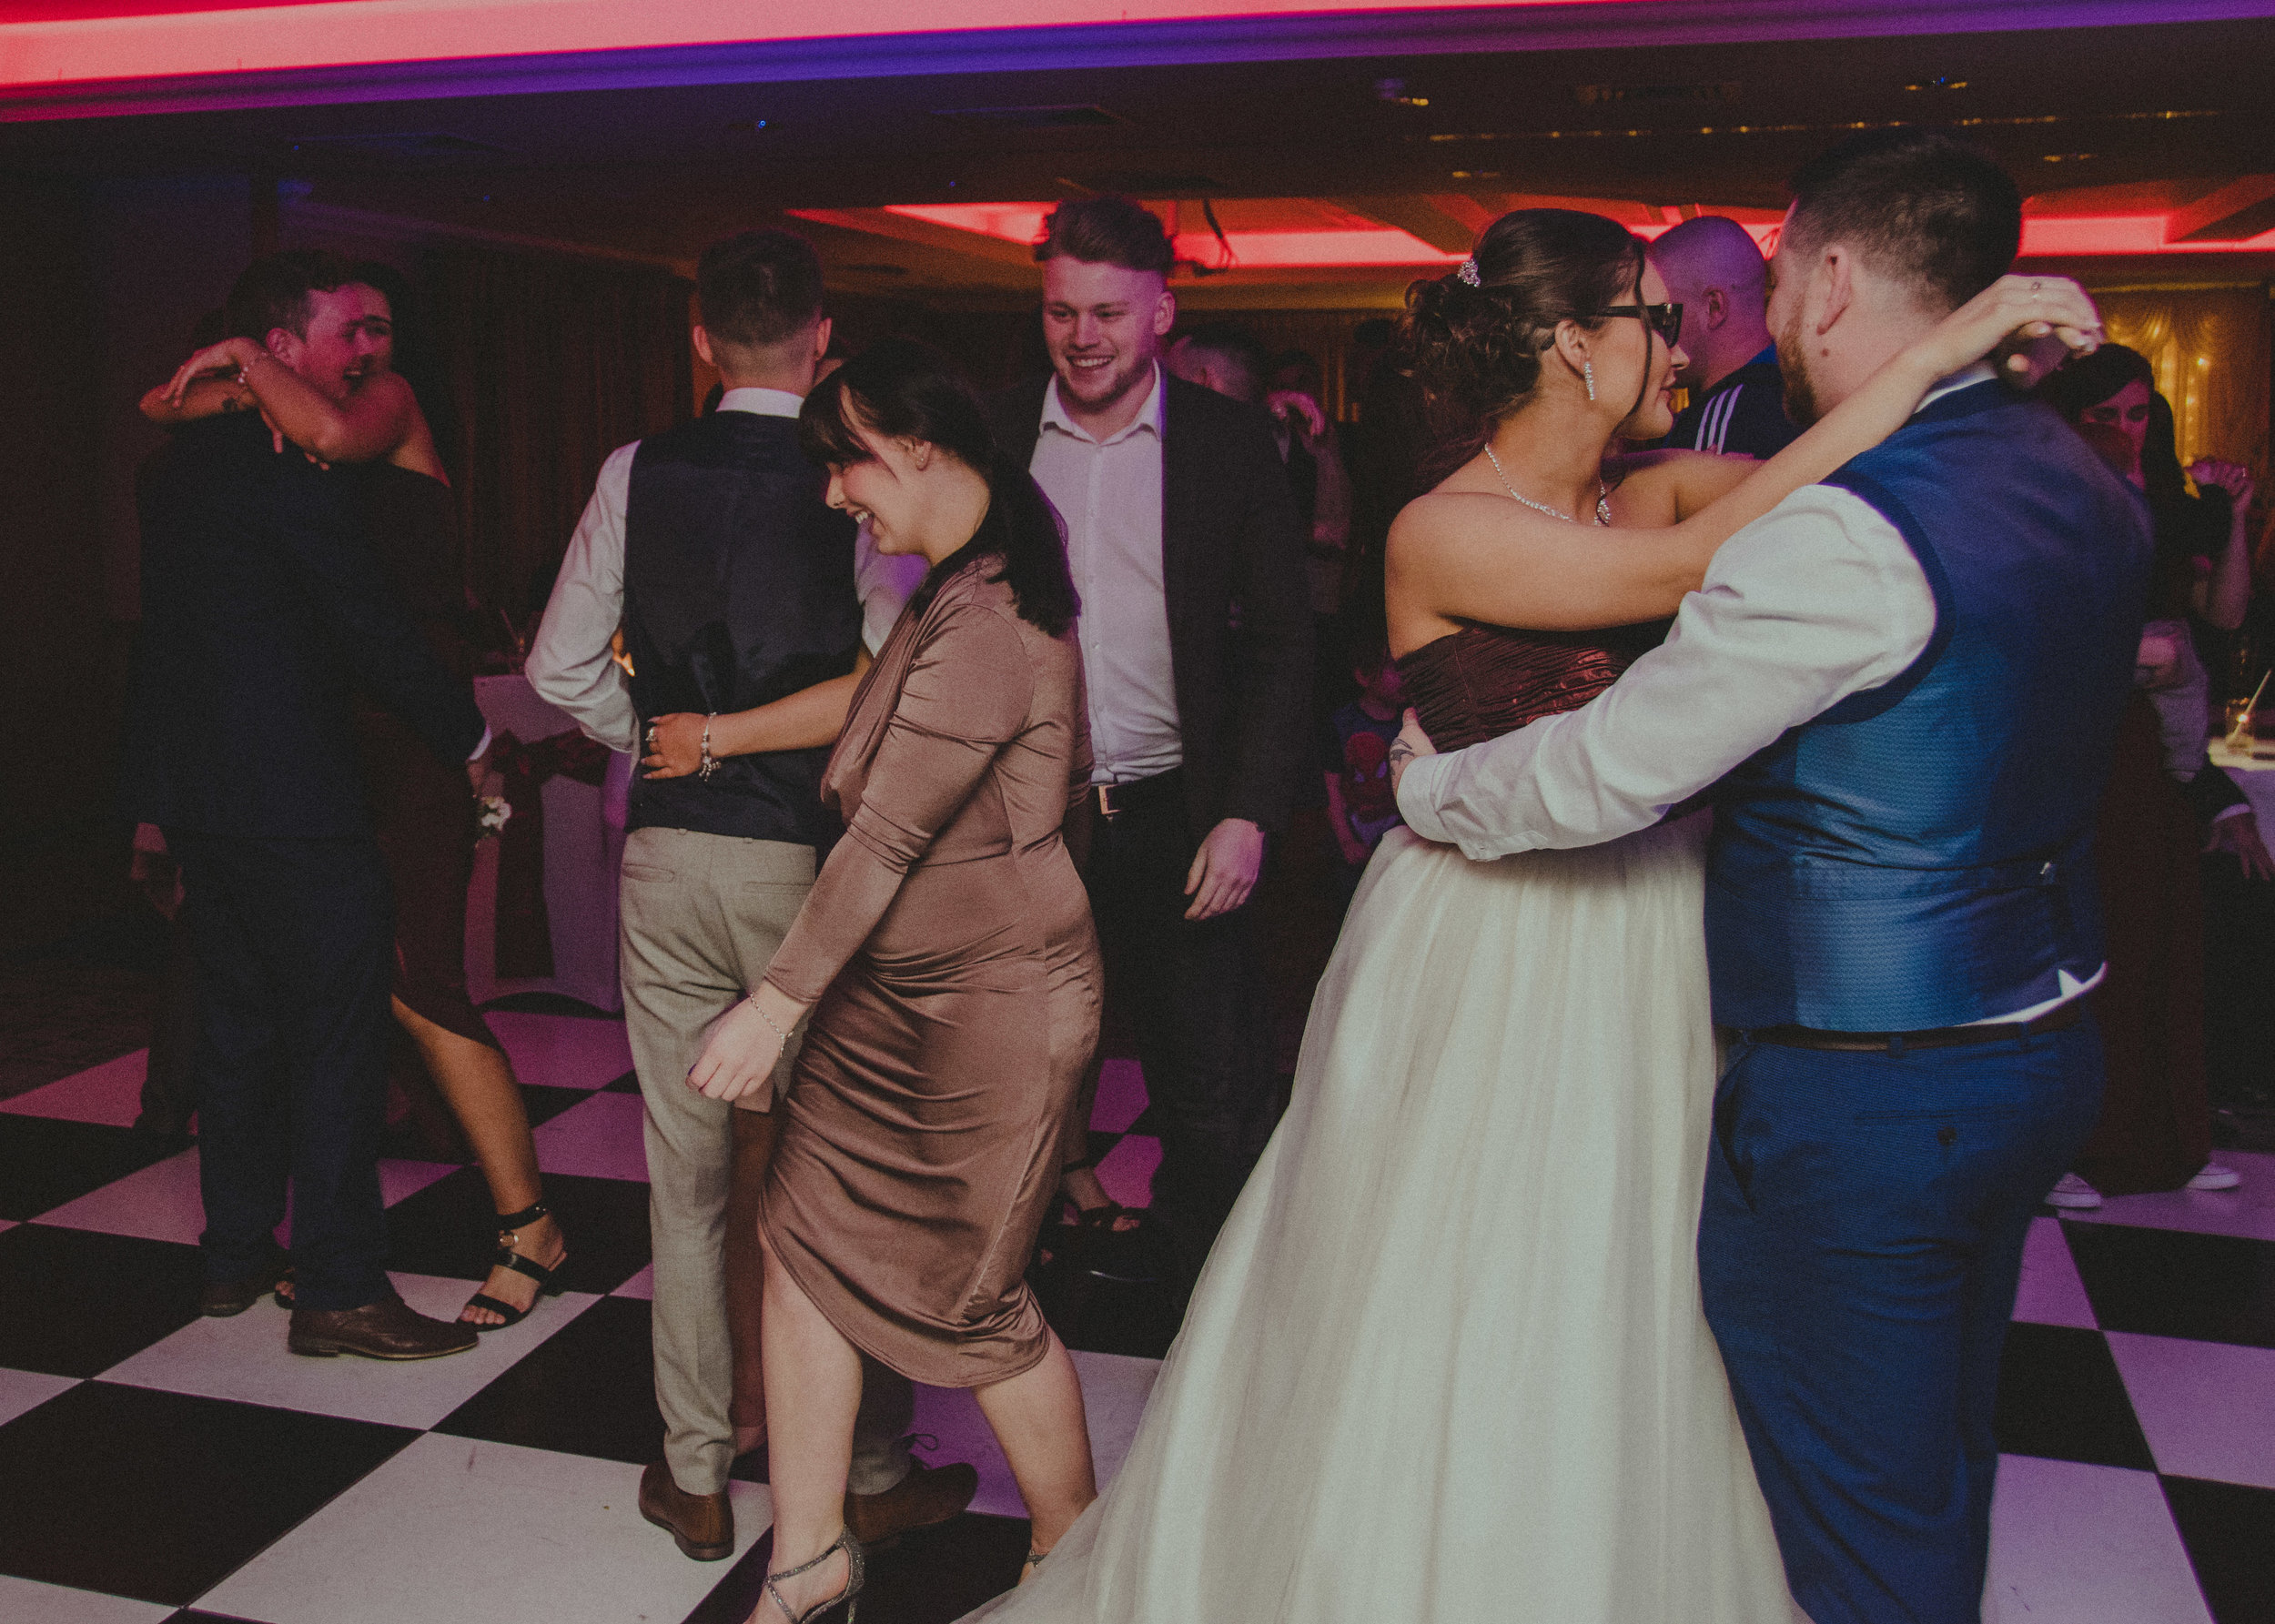 Lancashire wedding photographer London wedding photographer wedding photographer essex wedding photographer sussex wedding photographer award winning wedding photographer (1 of 1).jpg